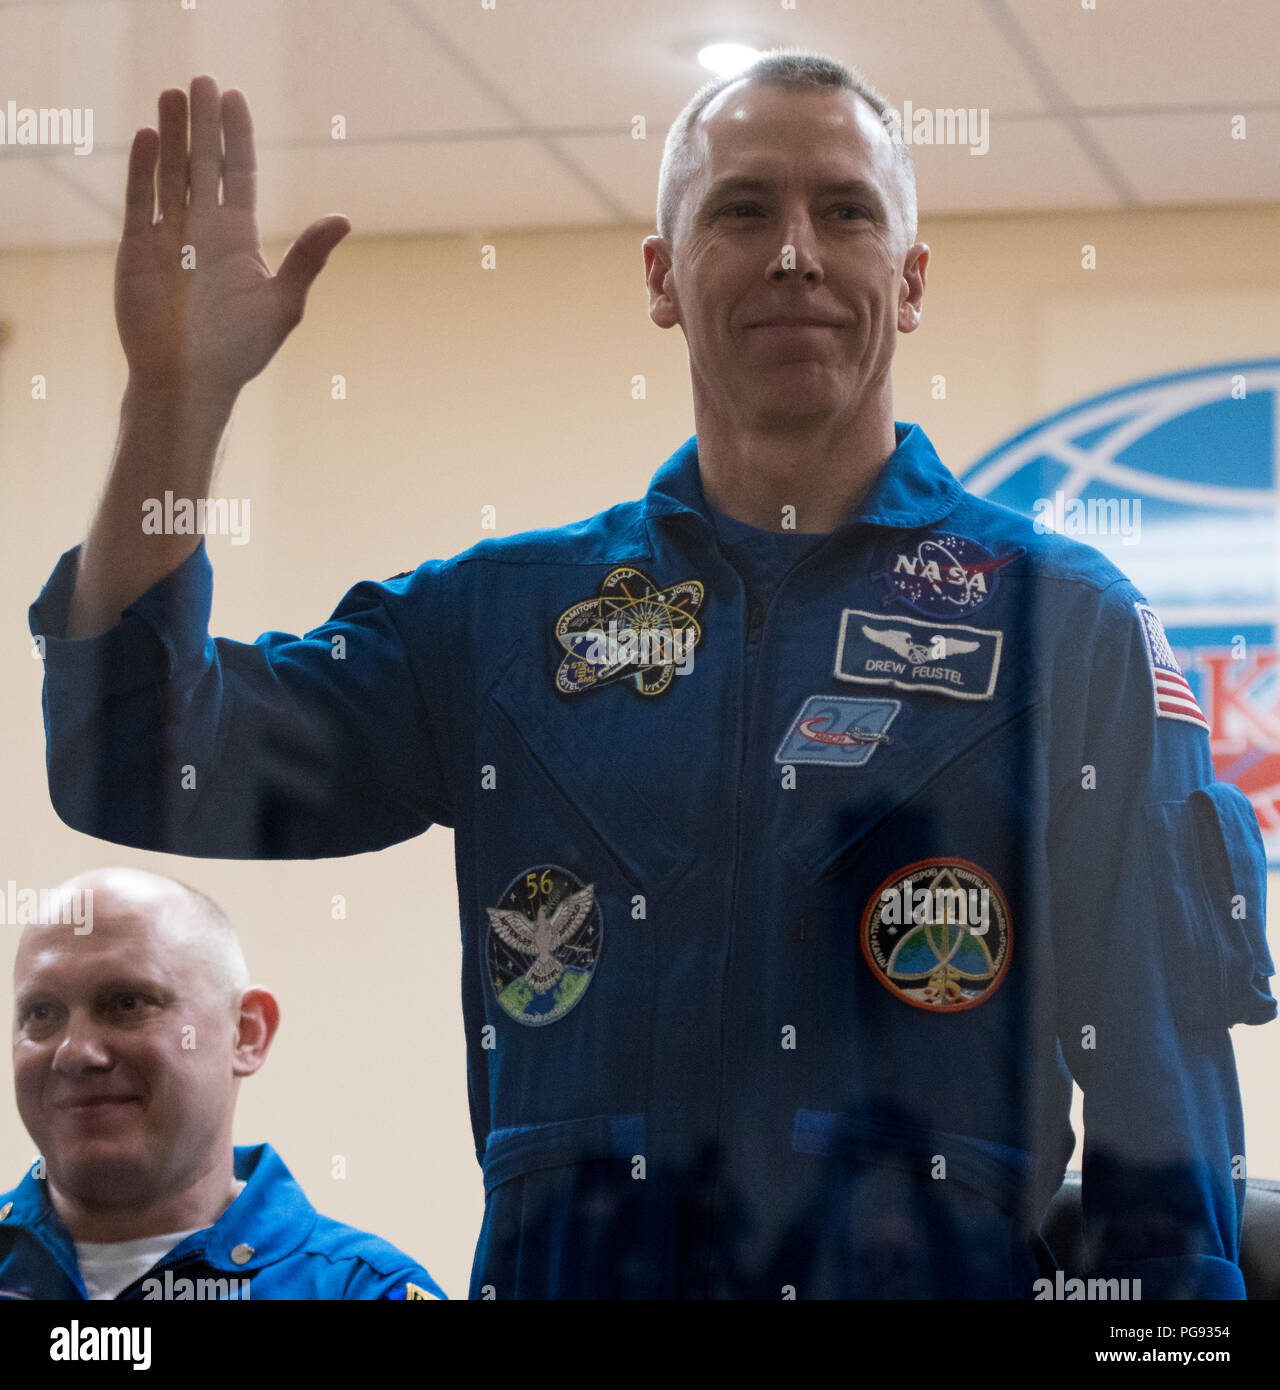 Expedition 55 flight engineer Drew Feustel is seen in quarantine, behind glass, during a press conference, Tuesday, March 20, 2018 at the Cosmonaut Hotel in Baikonur, Kazakhstan. Feustel, Soyuz Commander Oleg Artemyev of Roscosmos, and flight engineer Ricky Arnold of NASA are scheduled to launch to the International Space Station aboard the Soyuz MS-08 spacecraft on Wednesday, March, 21. - Stock Image